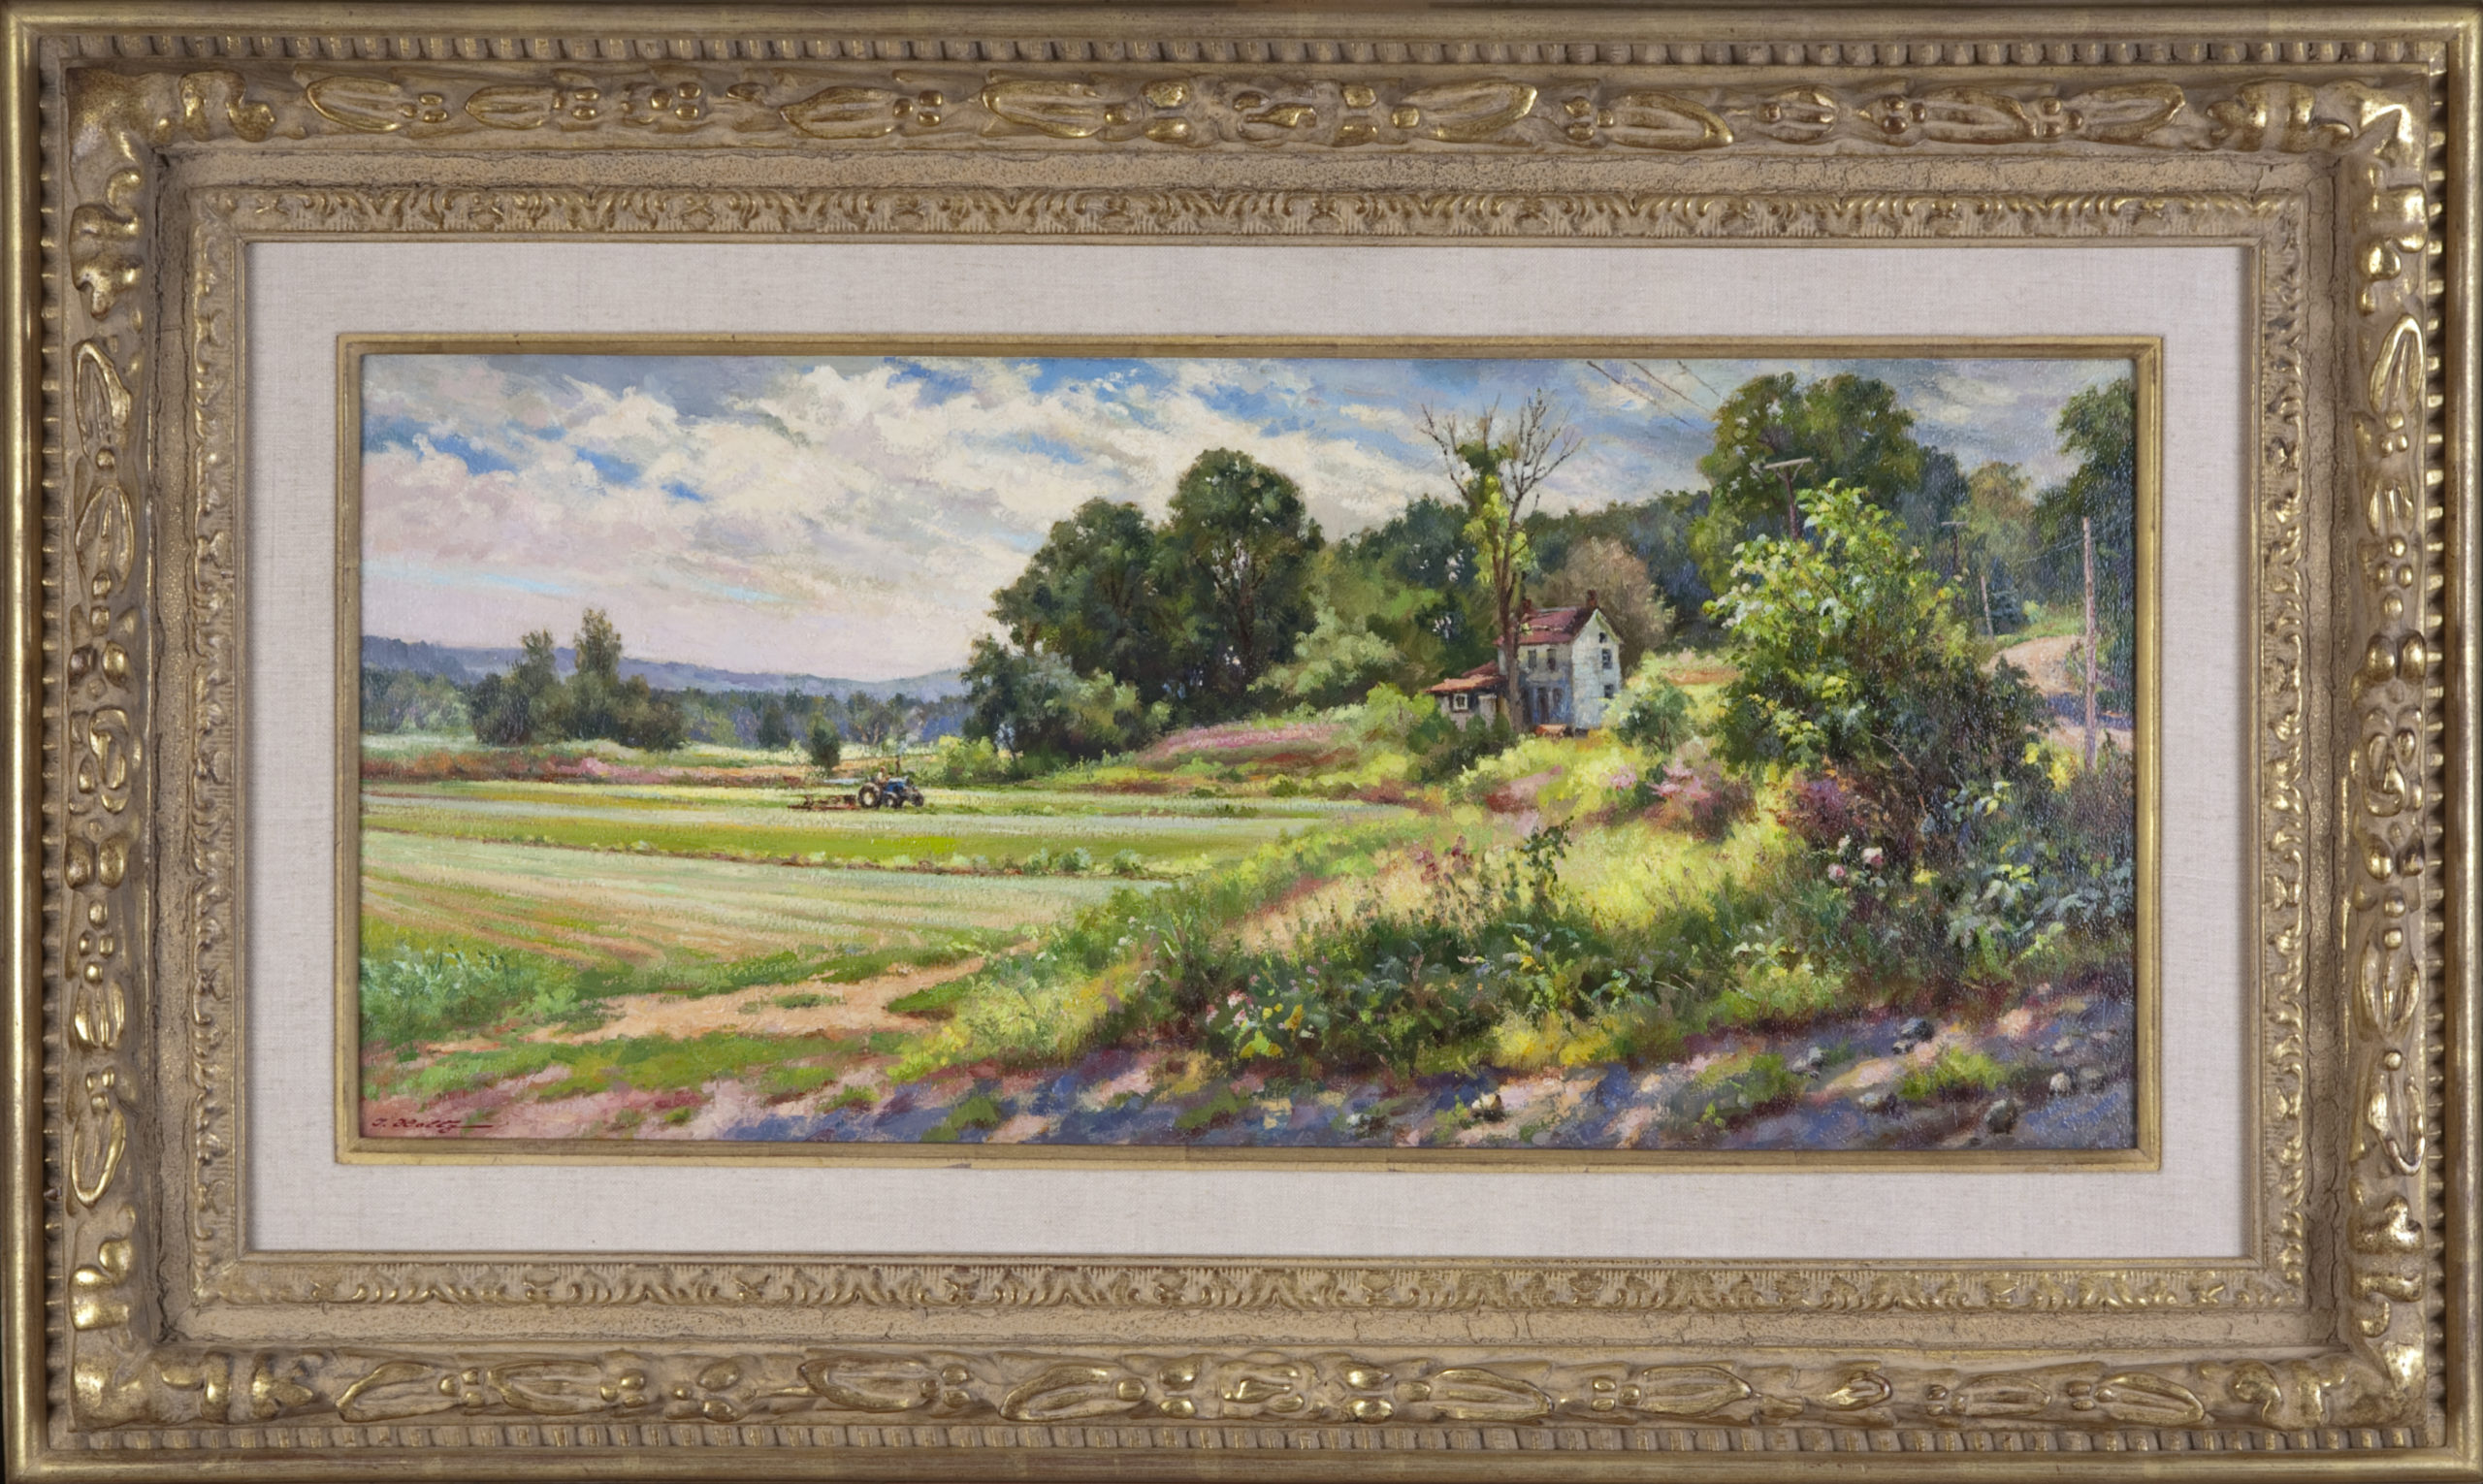 108 Great Meadows 1984 - Oil on Masonite - 27.825 x 11.825 - Frame: 39 x 22.5 x 2.75